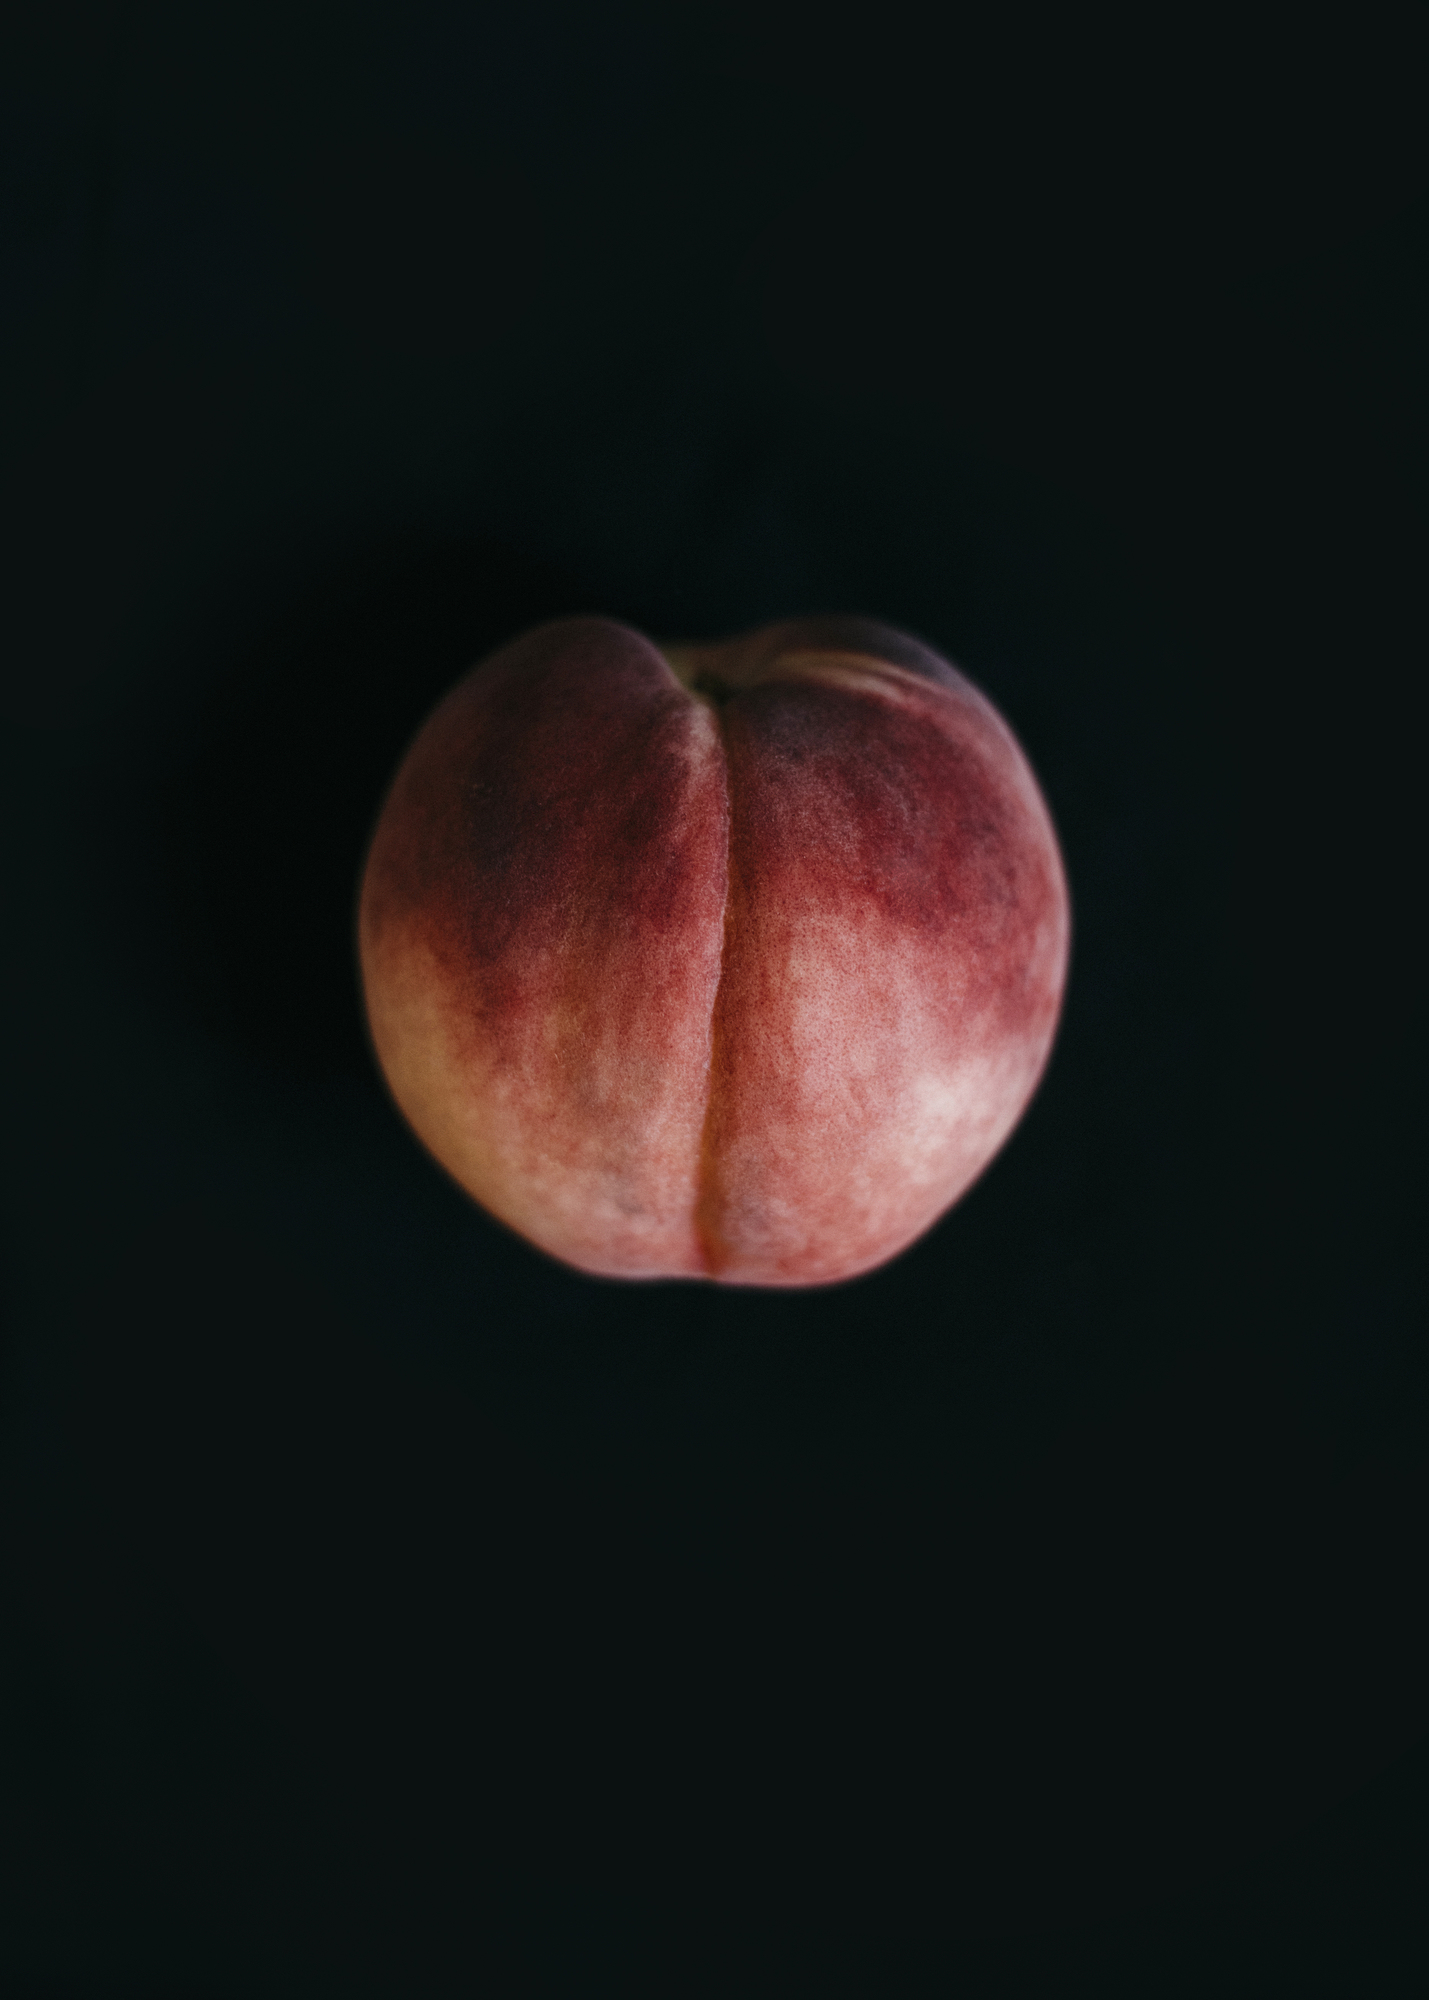 Image of a peach on black by Los Angeles Food Photographer Rebecca Peloquin Photography as part of Dramatic Produce series